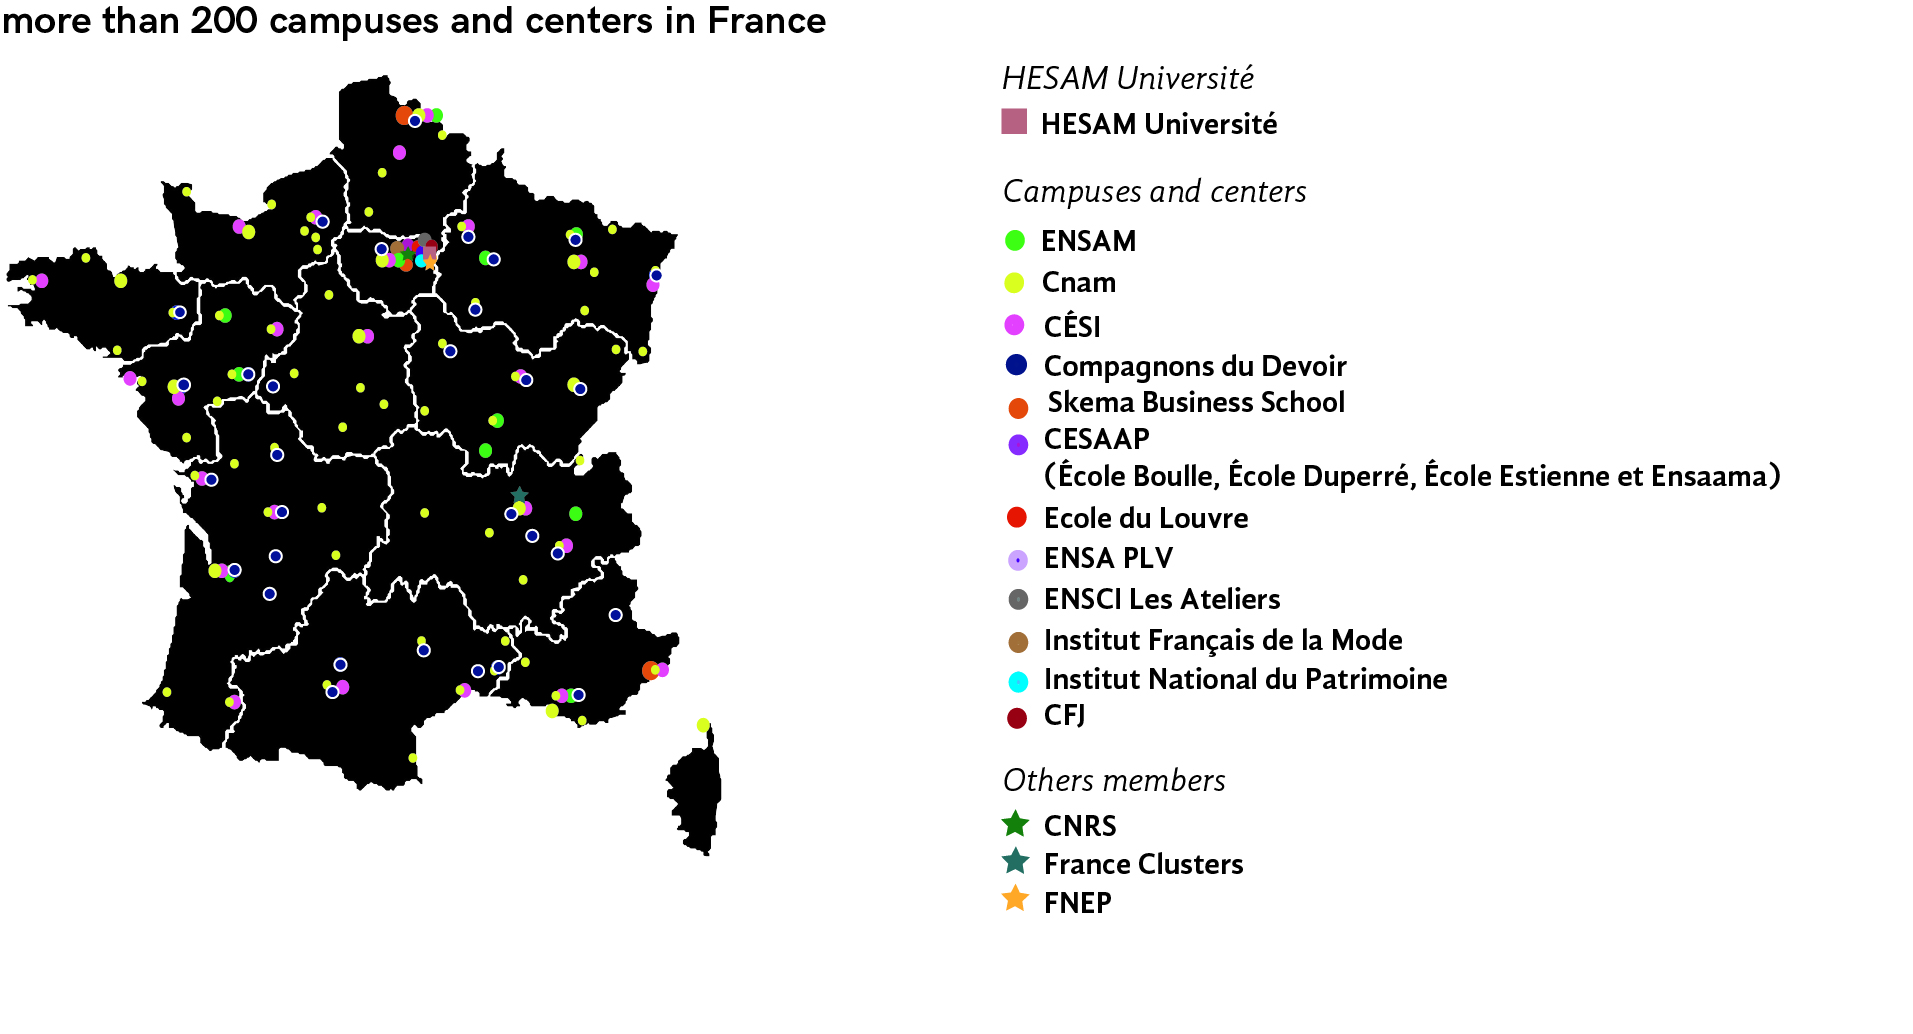 Carte des implantations d'HESAM Université en France